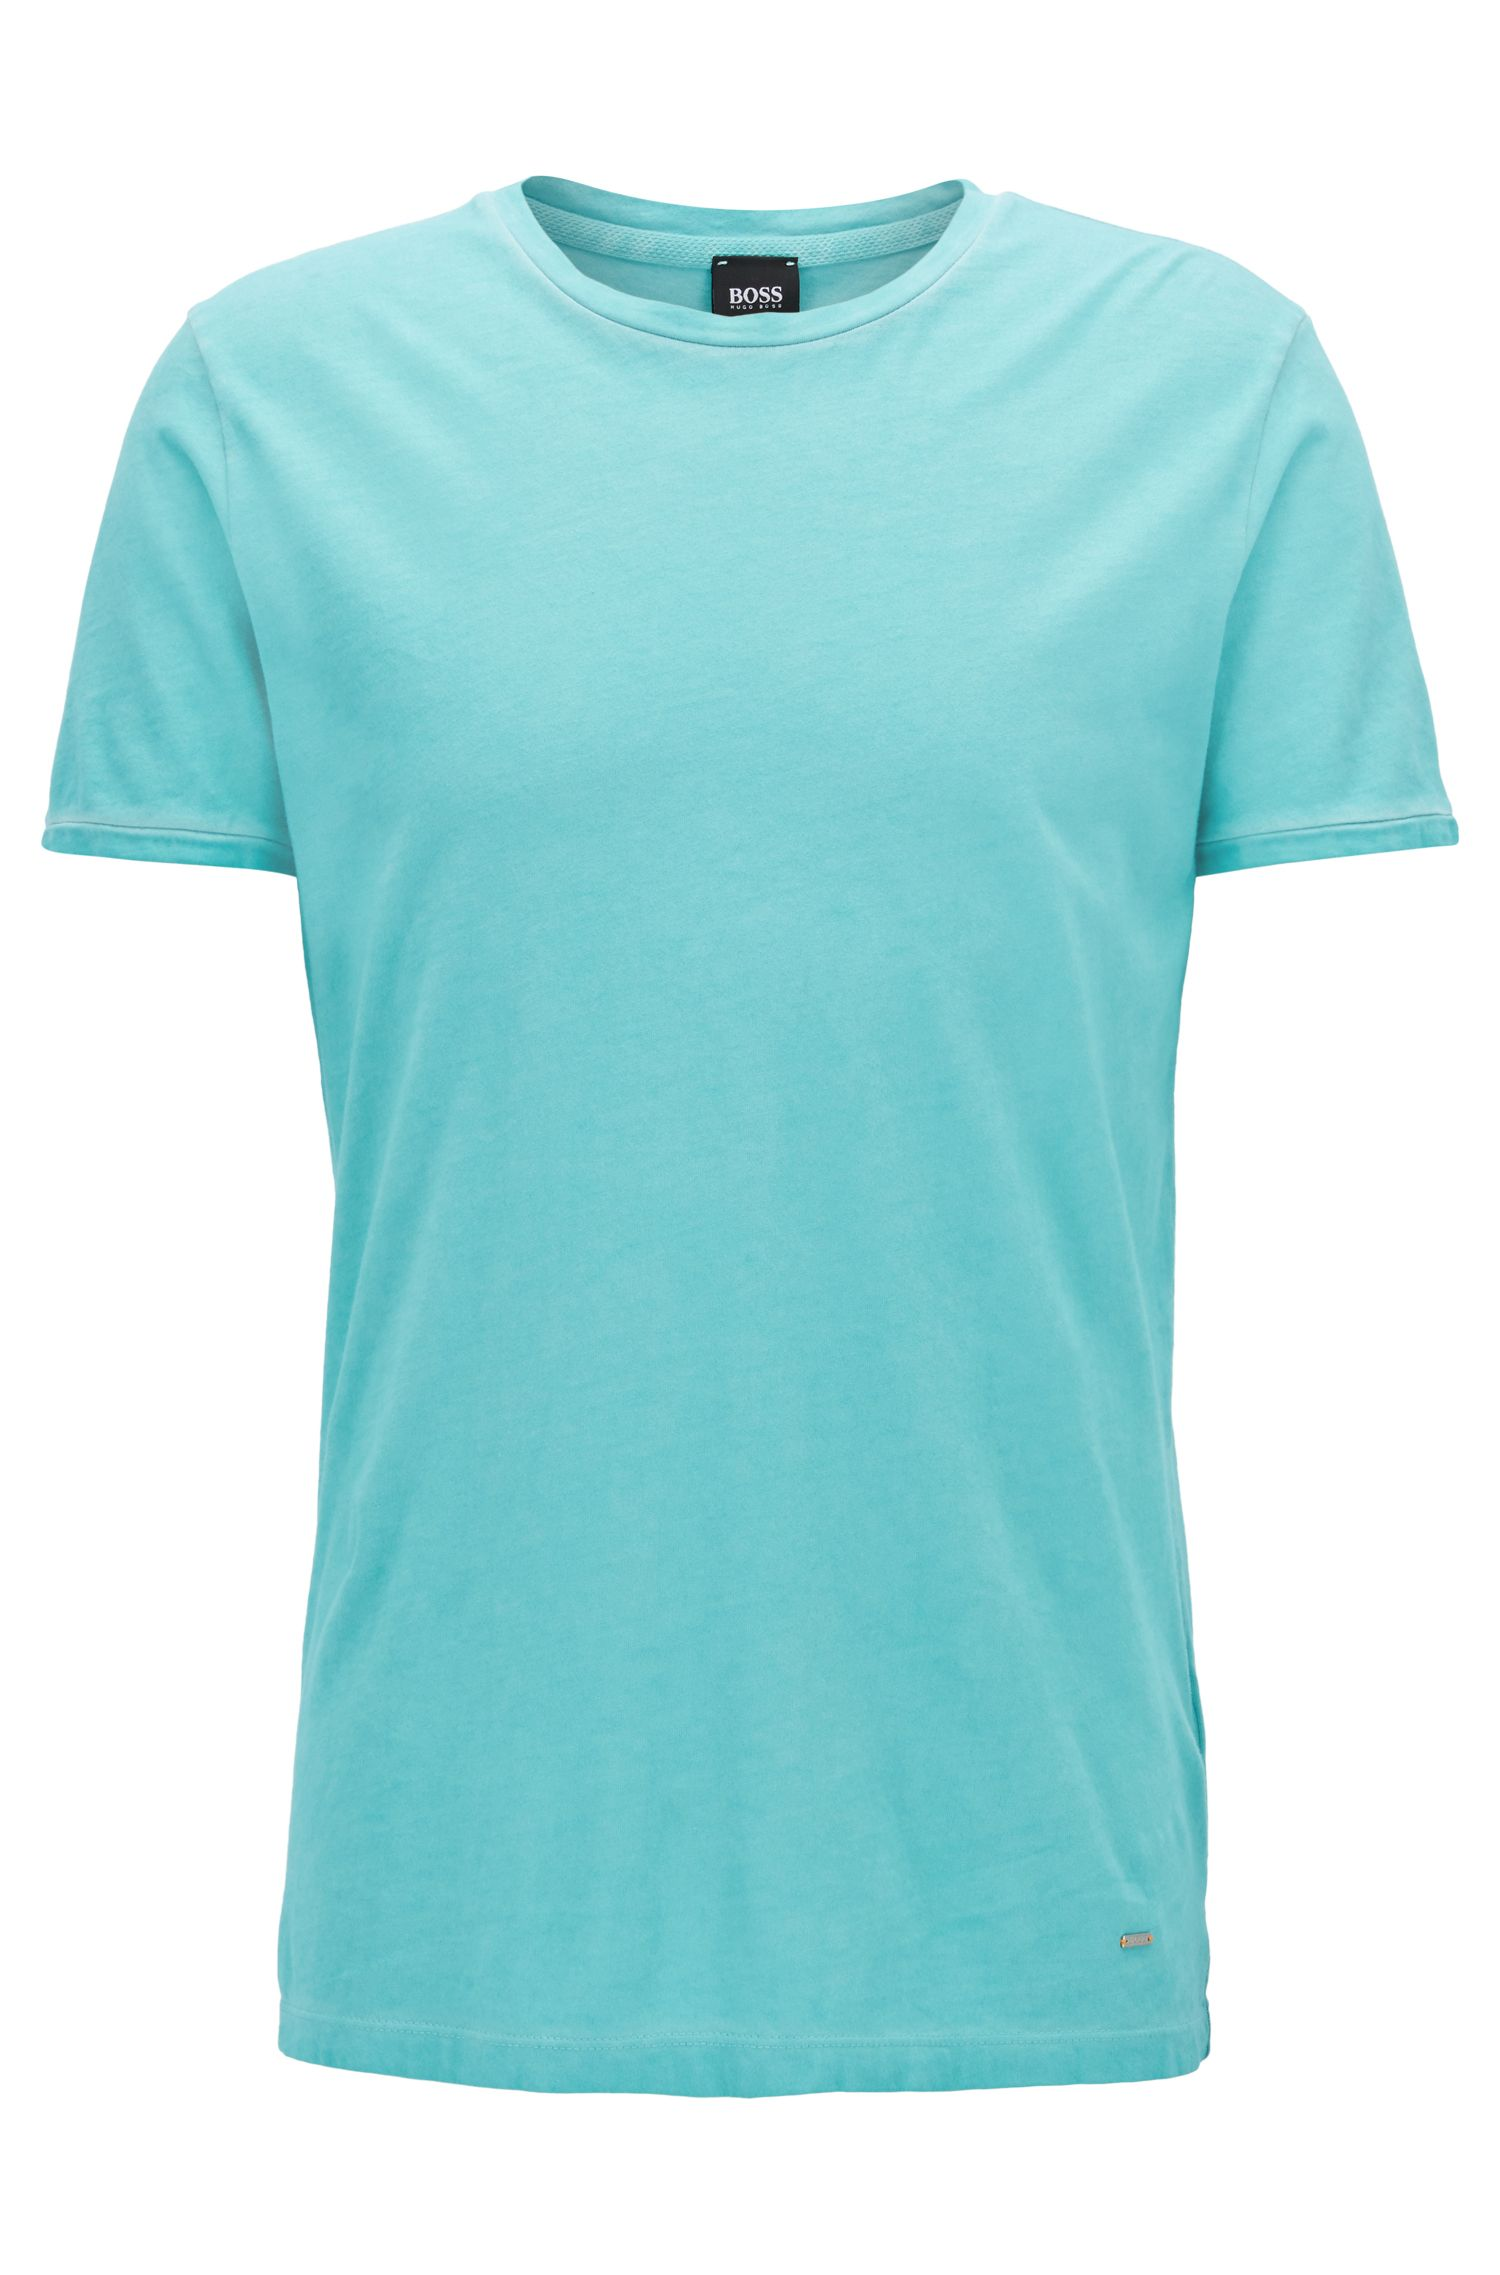 Regular-fit garment-dyed T-shirt in cotton, Turquoise